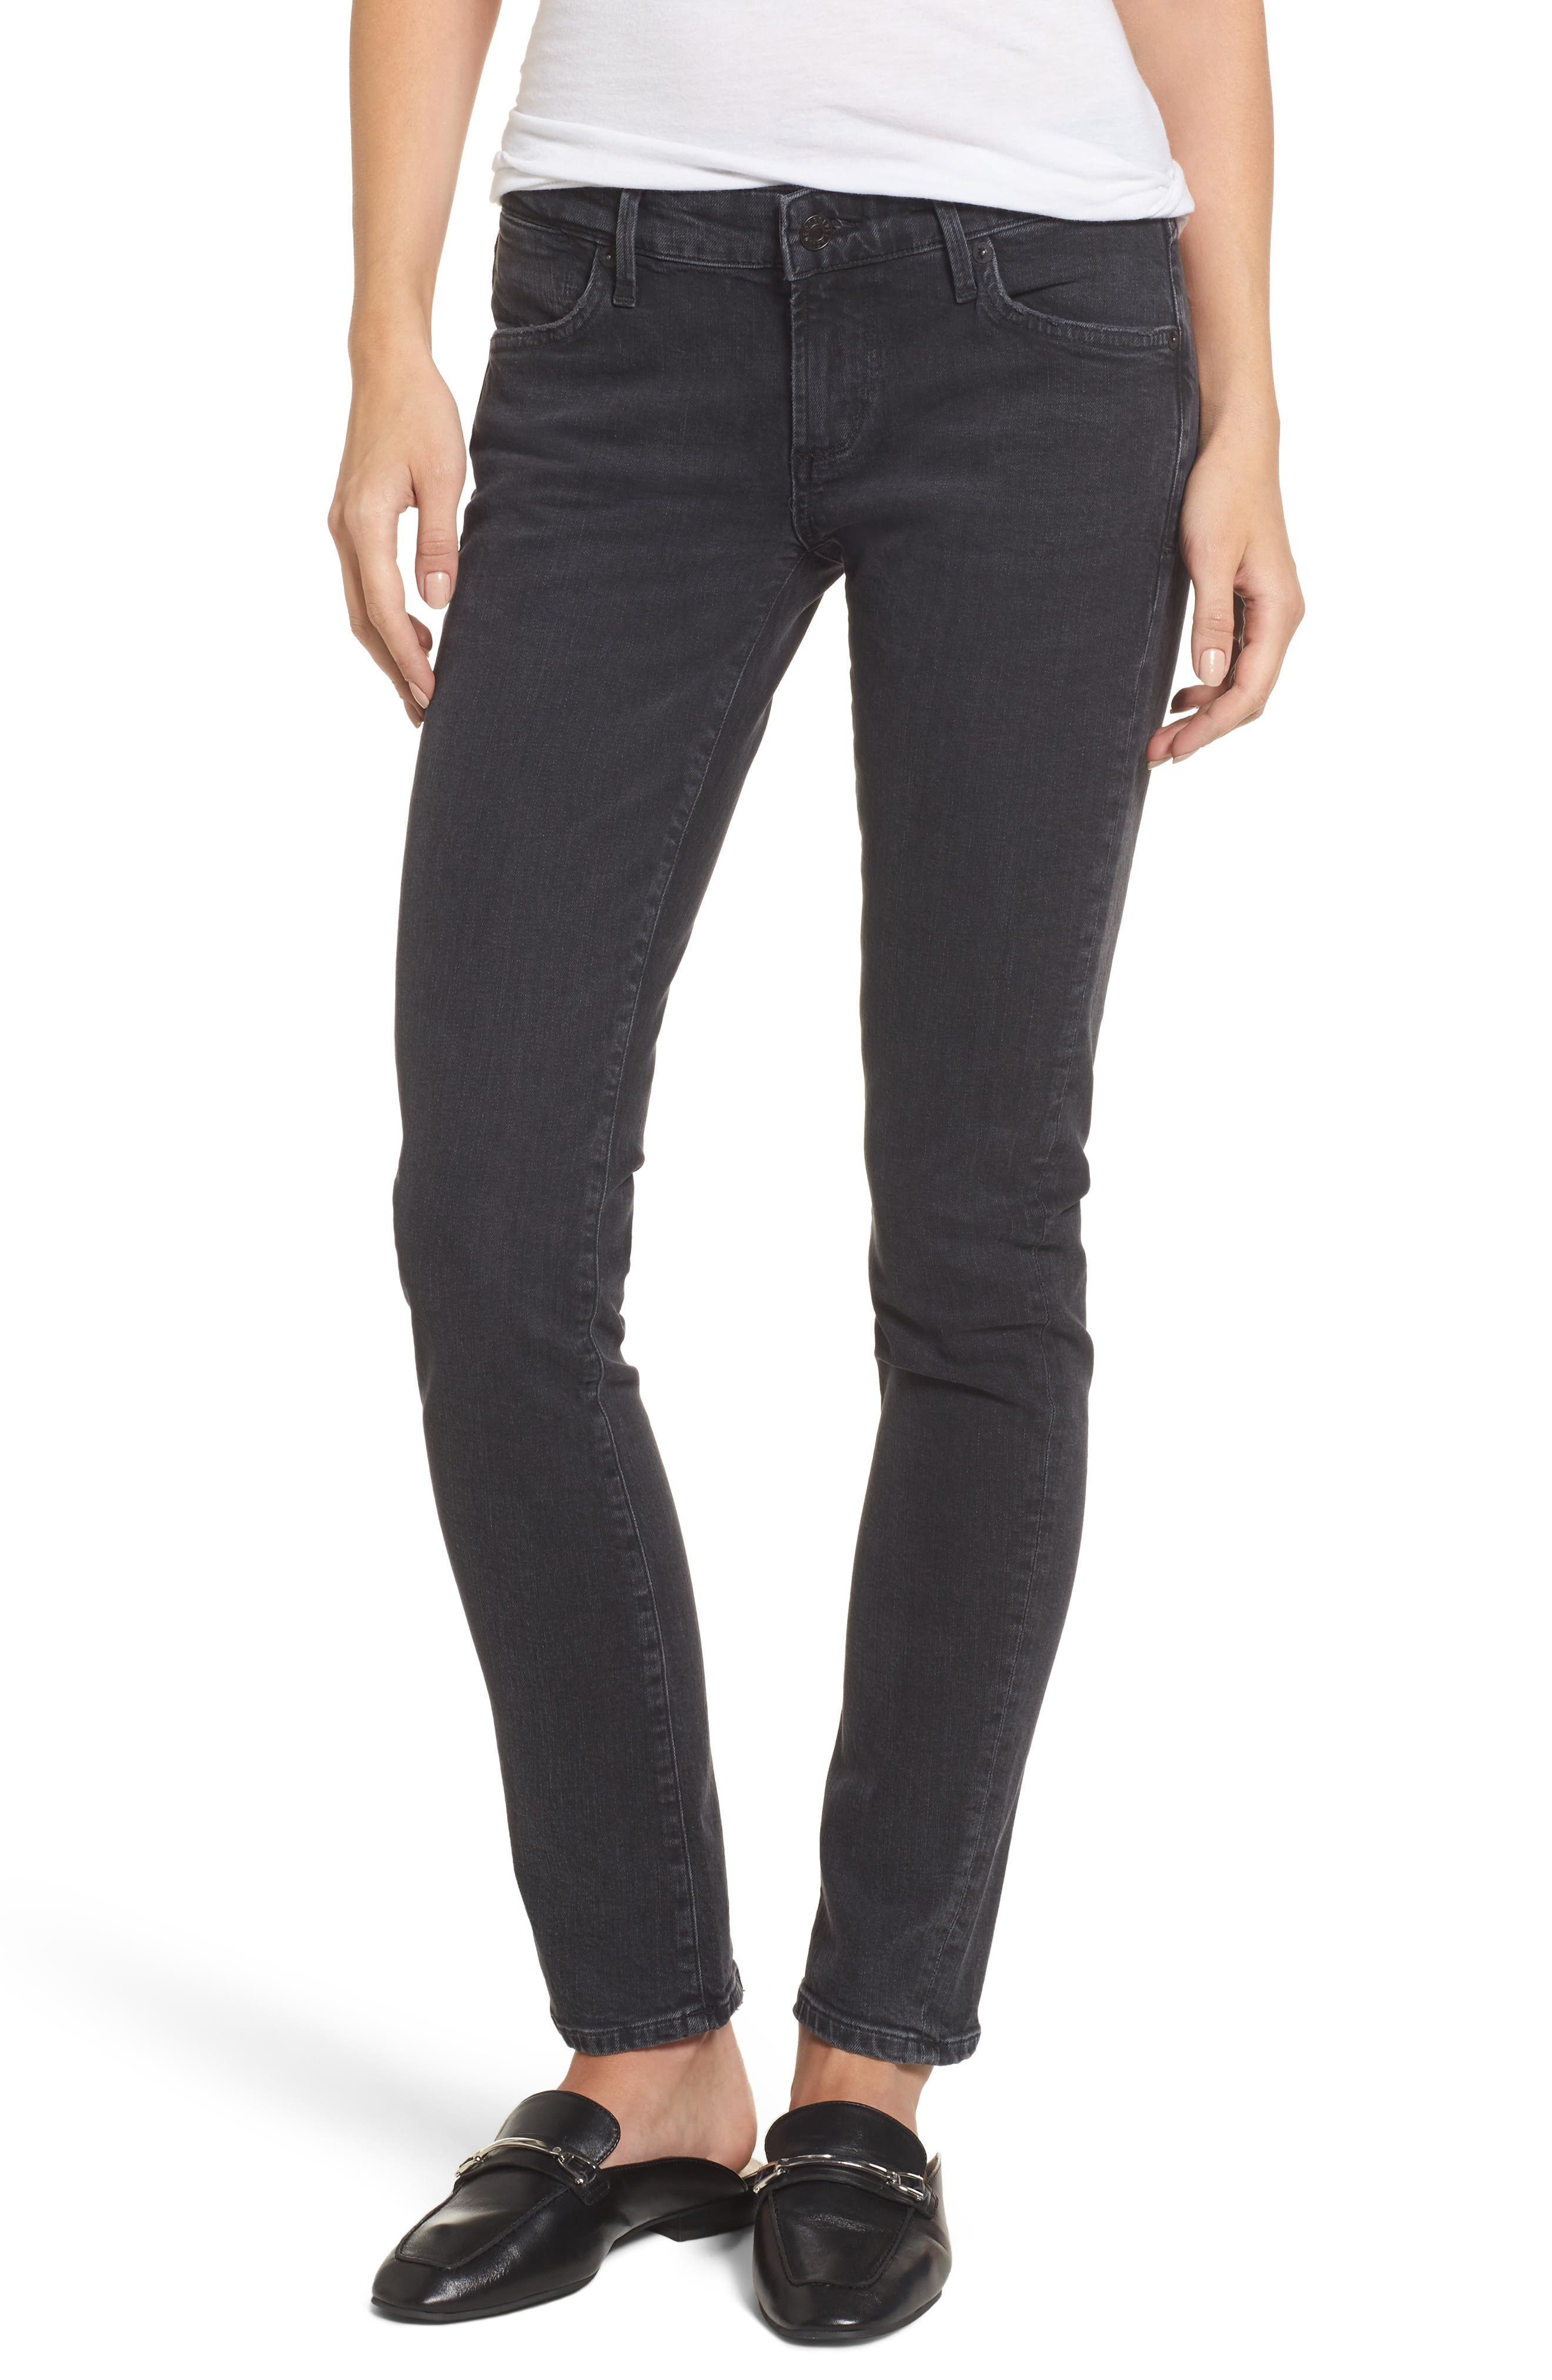 Chloe Low Rise Slim Jeans,                             Main thumbnail 1, color,                             Chelsea